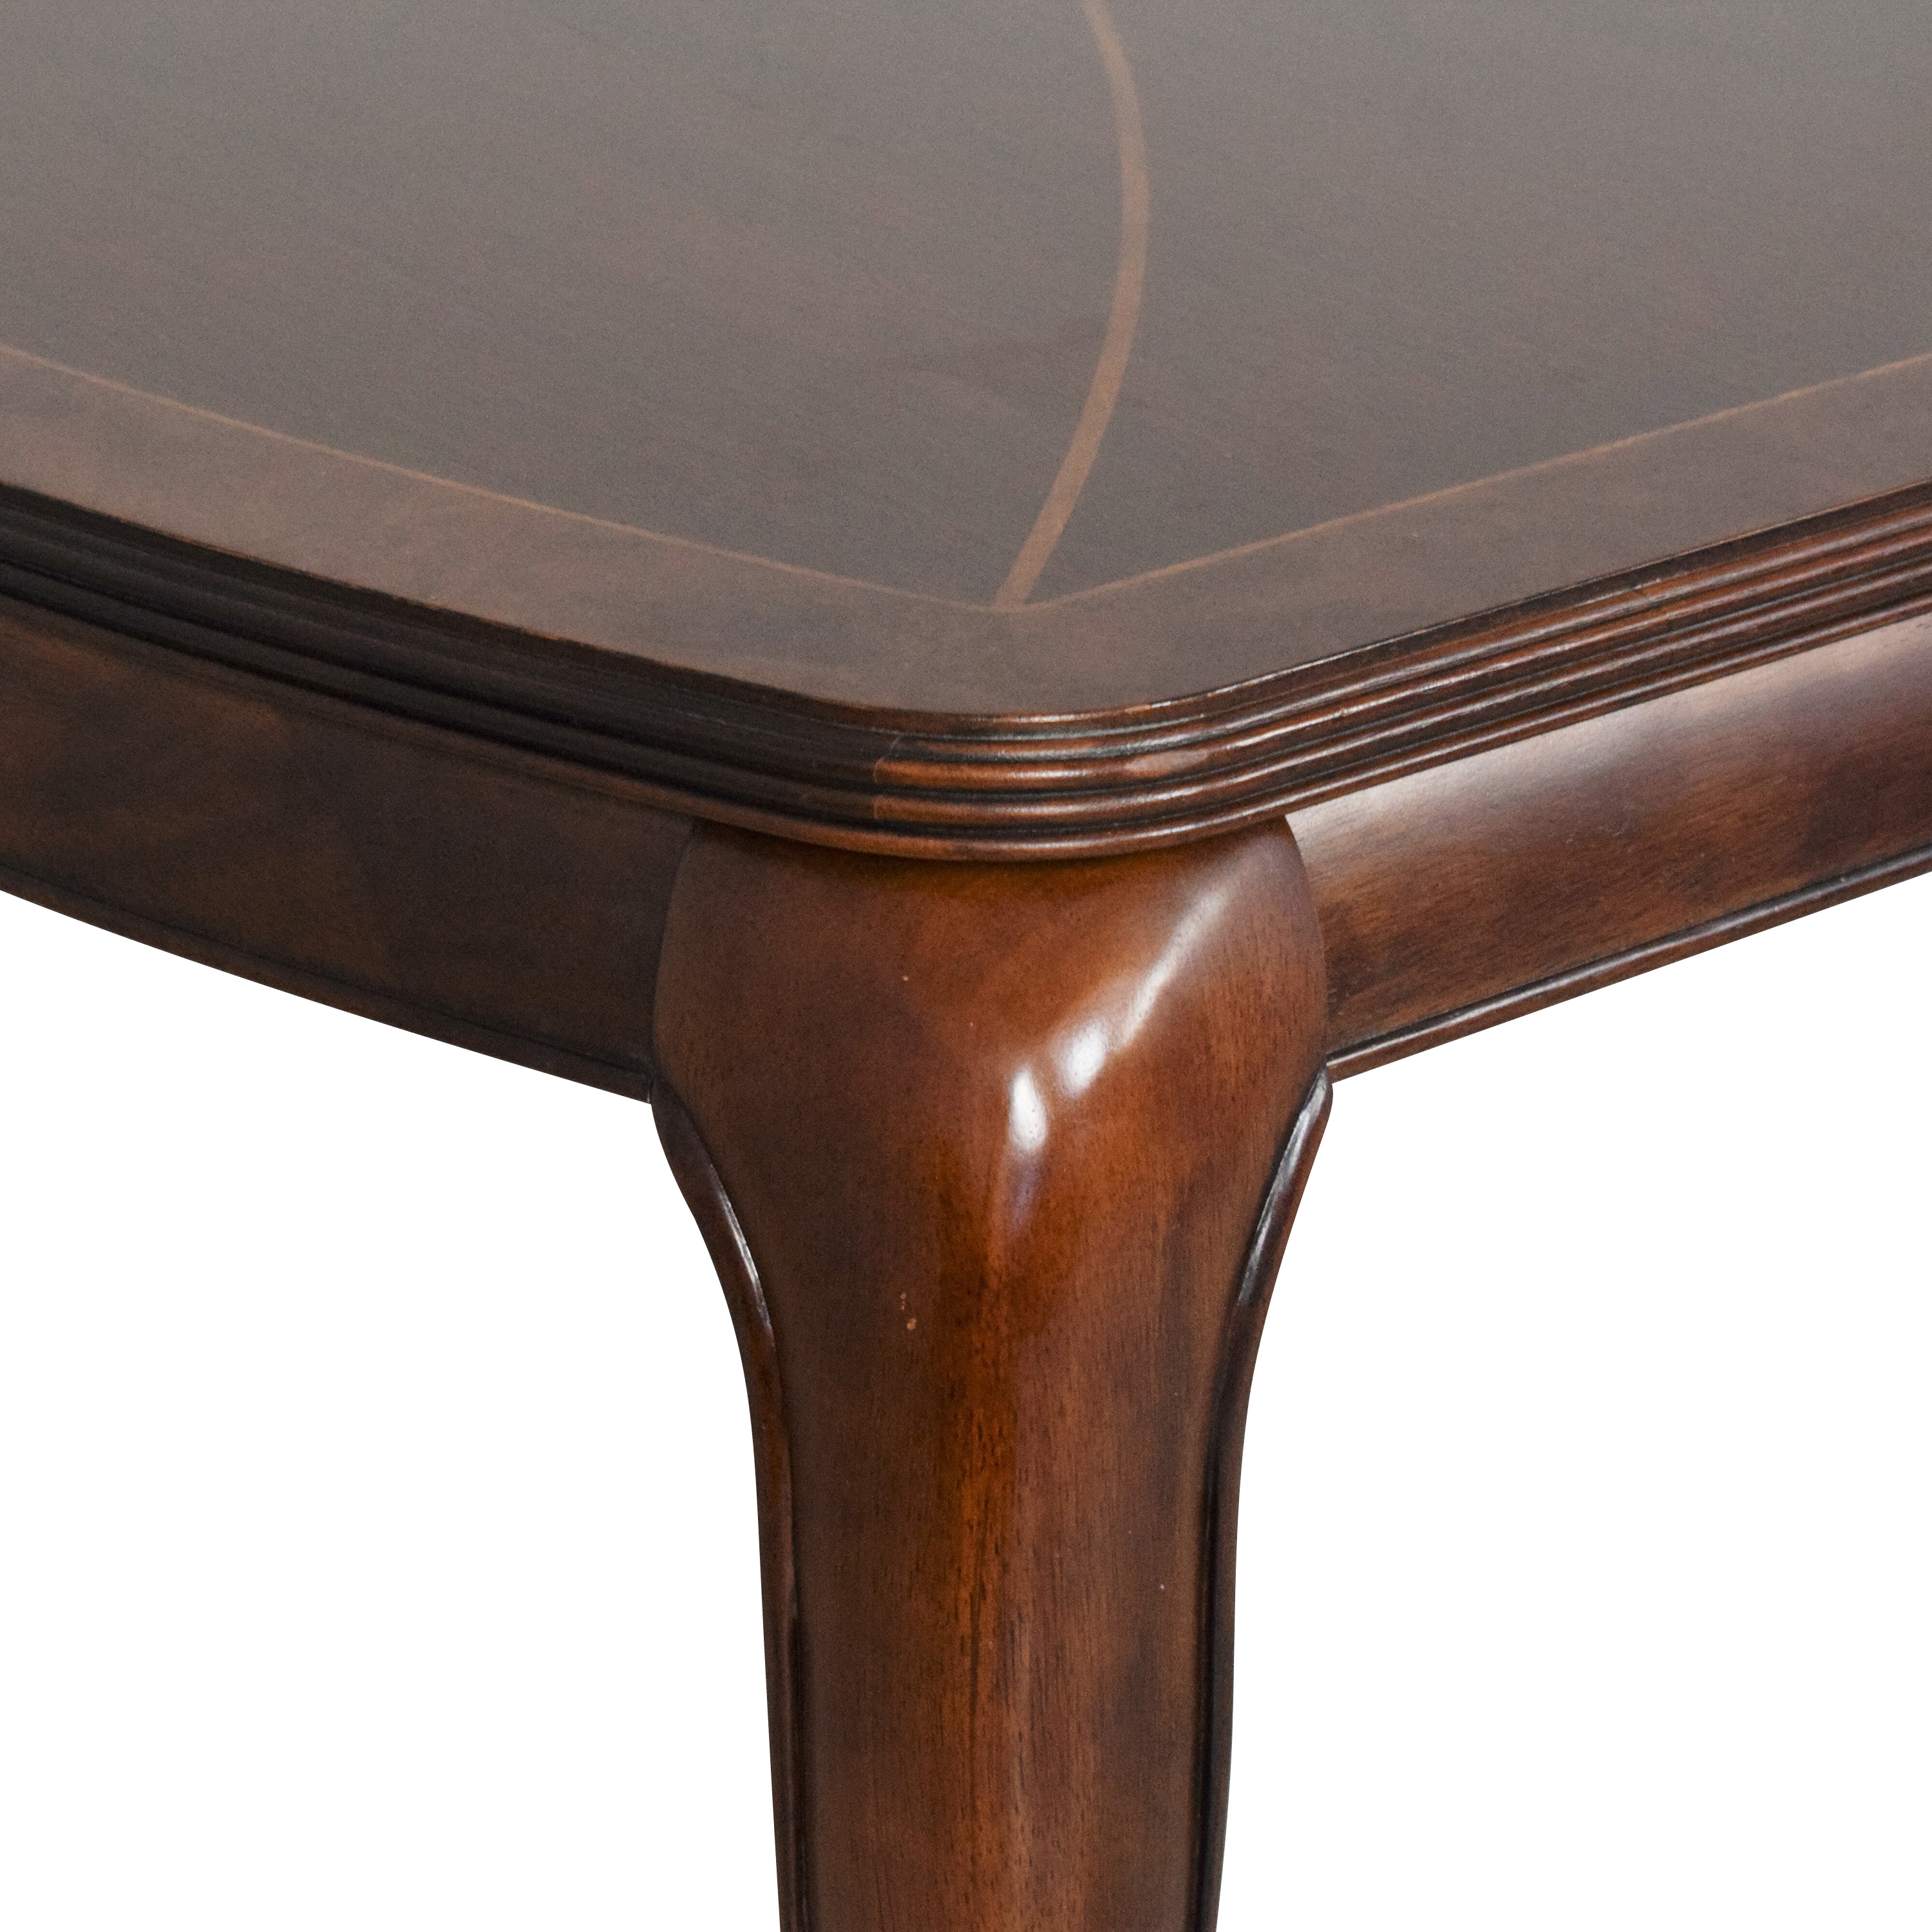 Thomasville Thomasville Bogart Collection Extendable Dining Table Tables